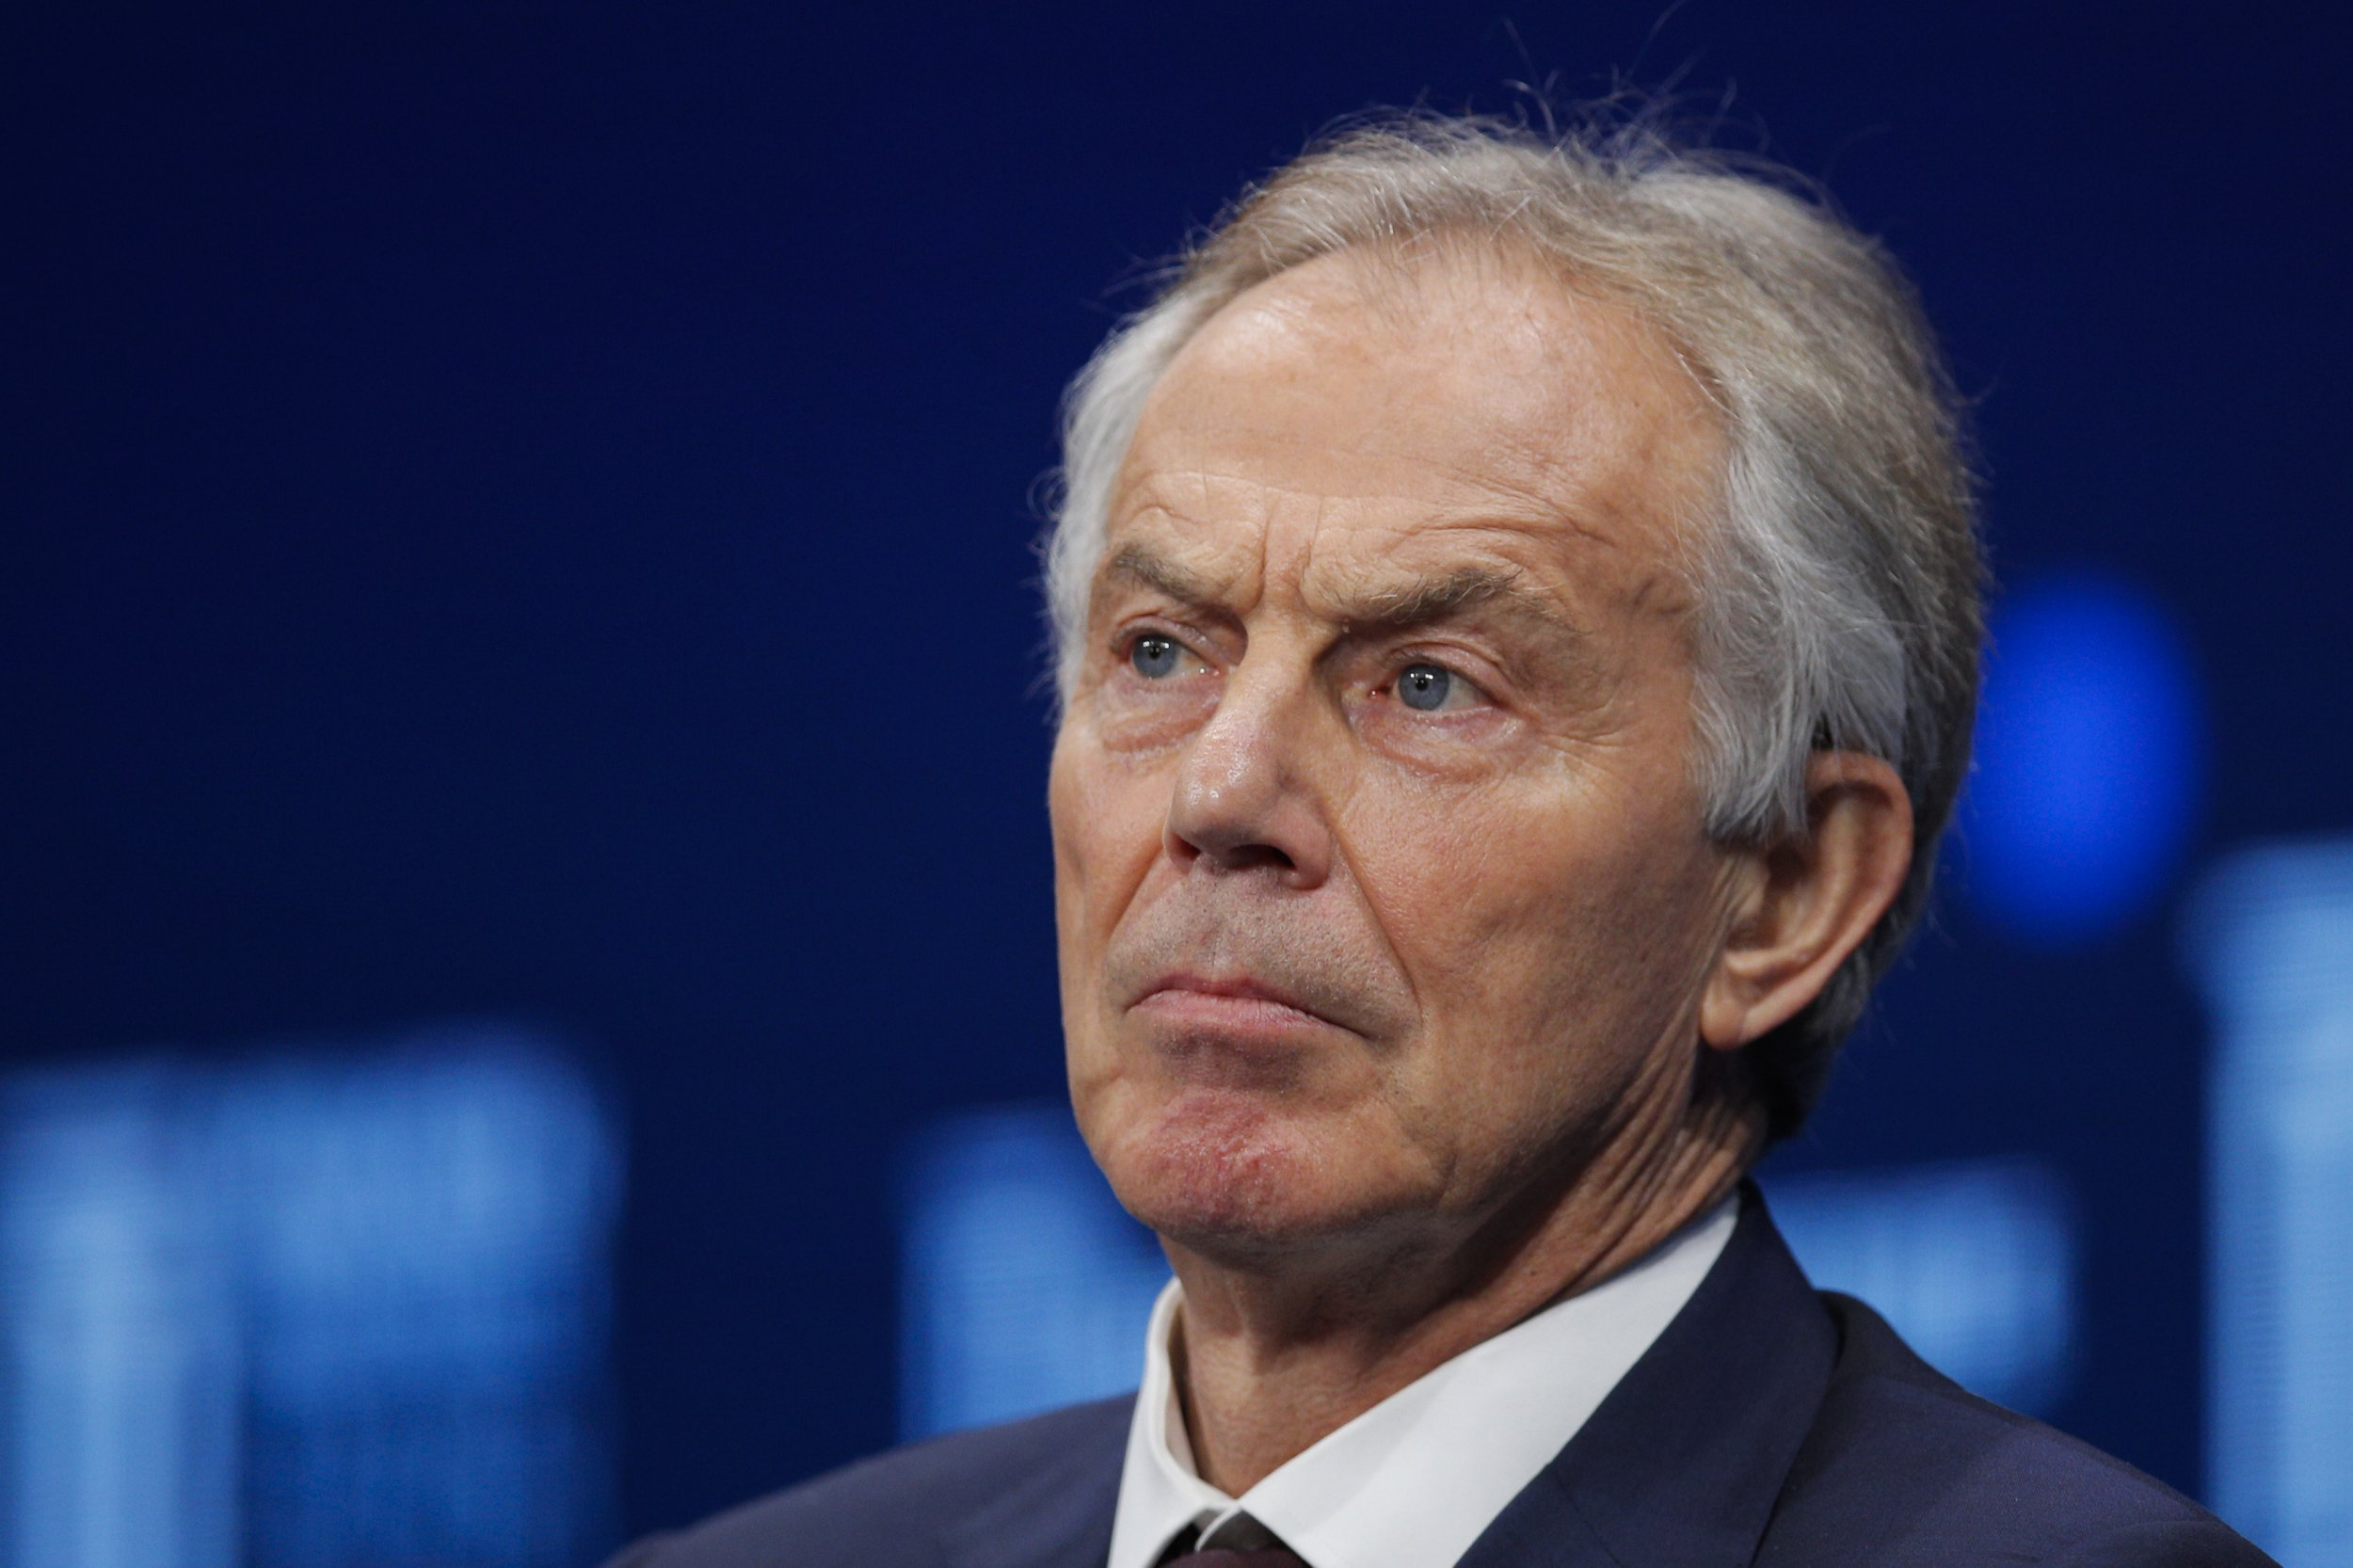 Tony Blair says Labour is a different party under Jeremy Corbyn